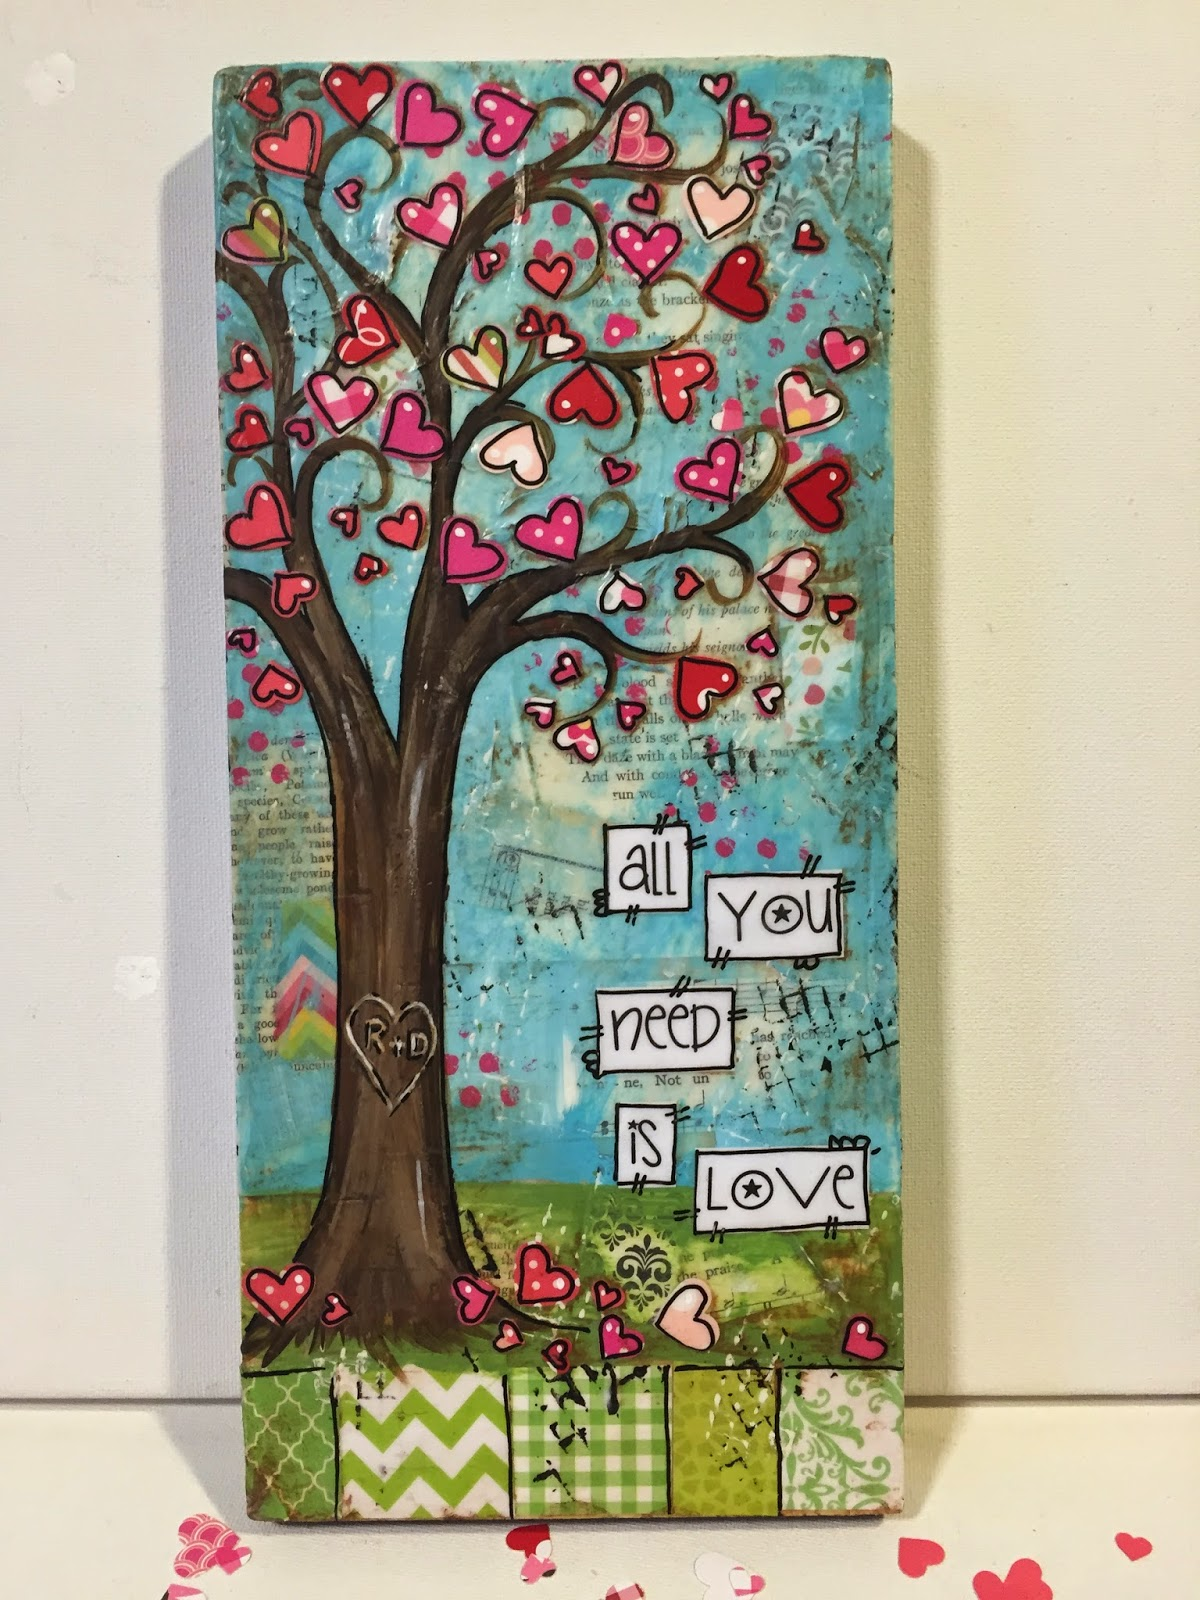 https://www.etsy.com/listing/219607201/valentines-day-love-tree-all-you-need-is?ref=shop_home_active_1